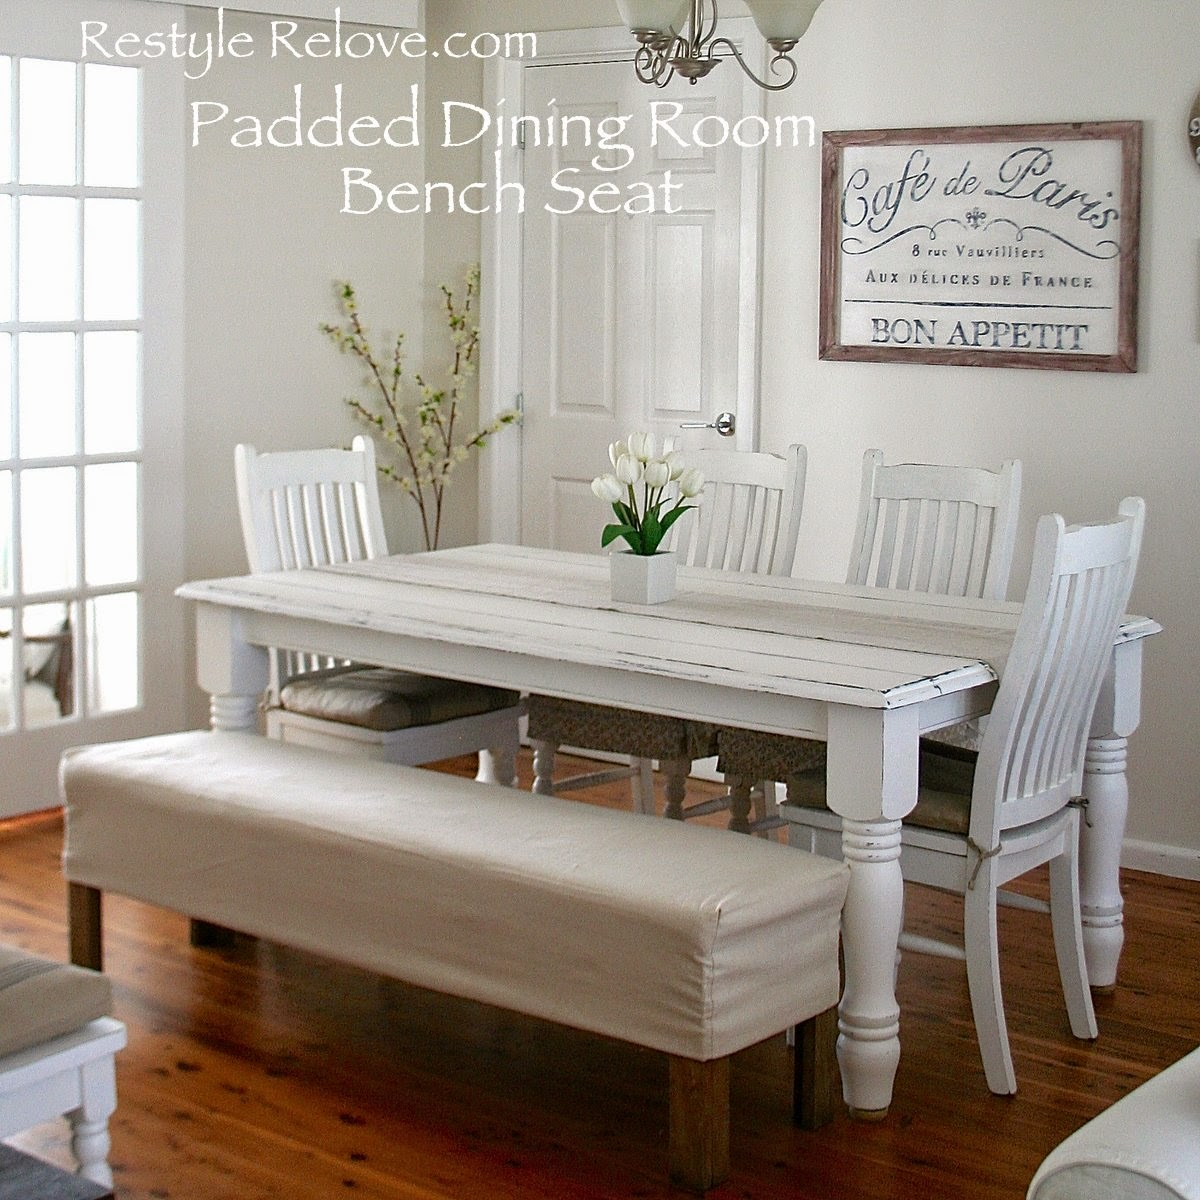 Padded Dining Room Bench Seat With Removable Washable Drop